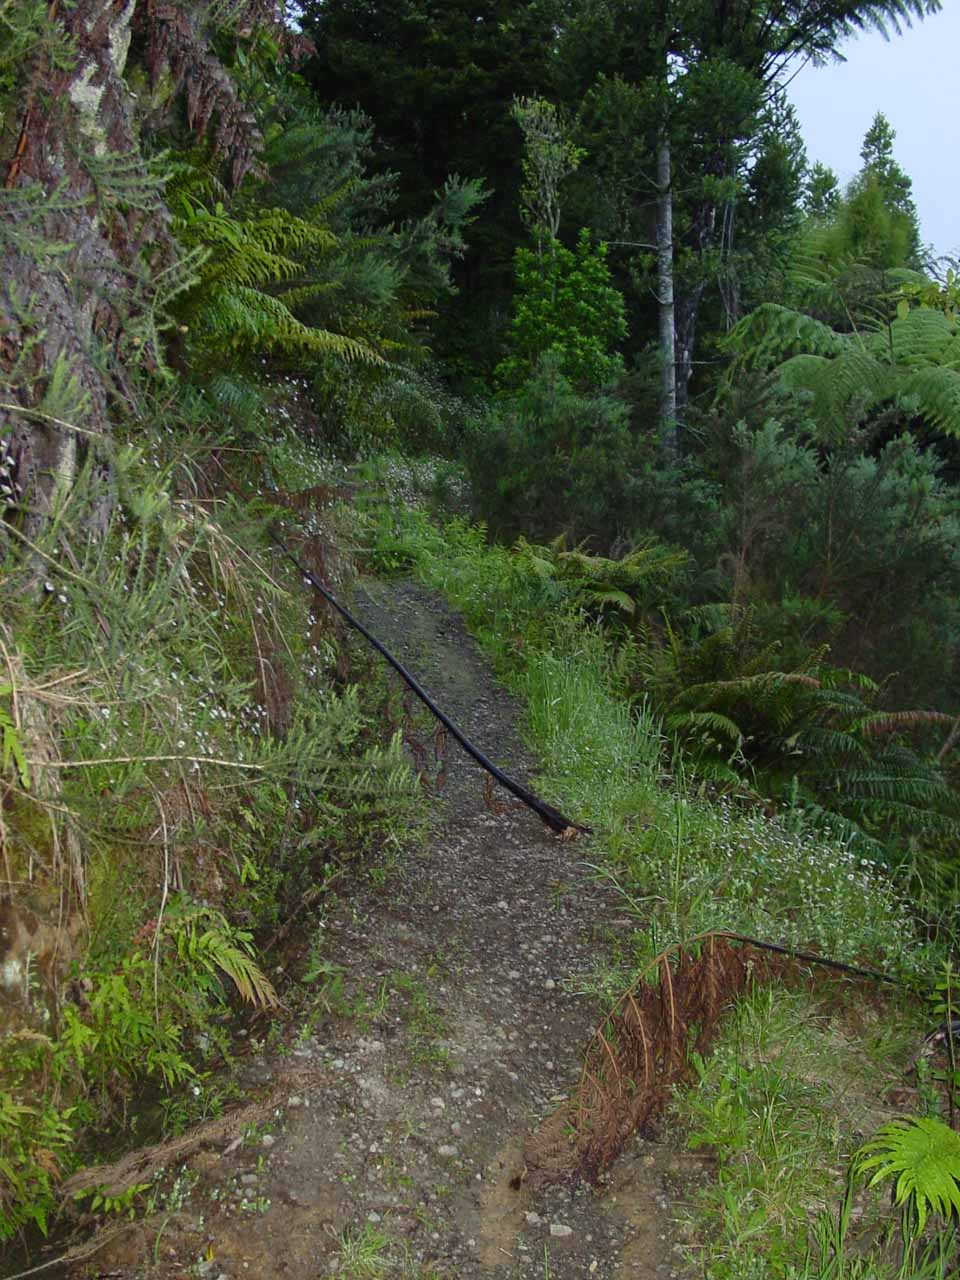 Initially, I had briefly made a wrong turn before realizing that this section of track went back to the road bypassing the car park